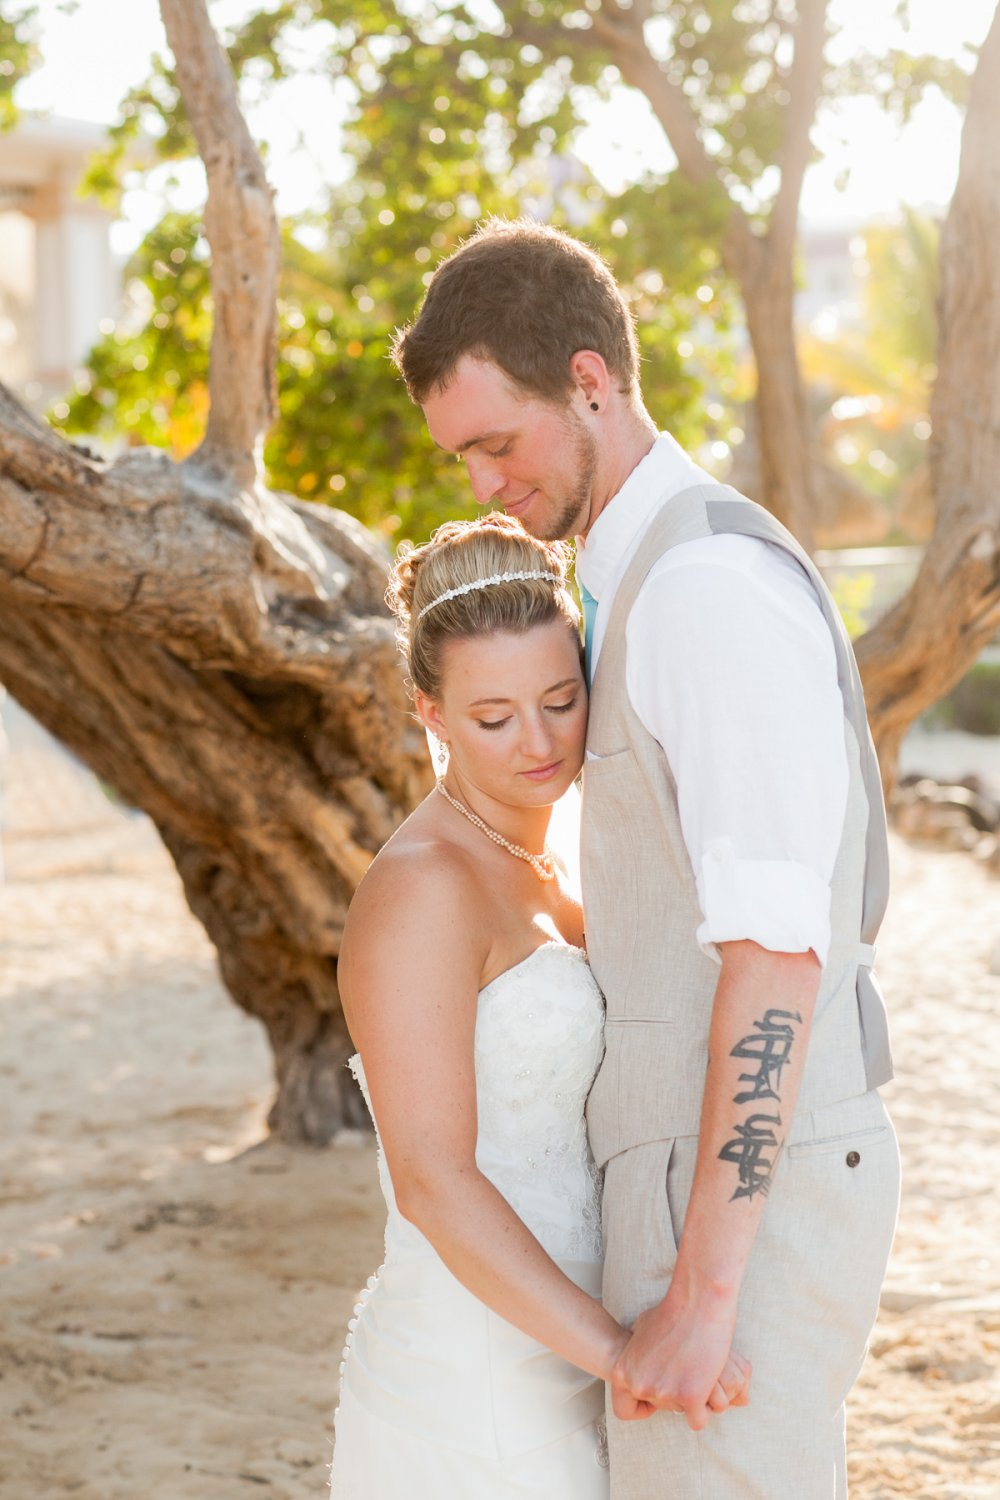 JF Hannigan Wedding Photography: Kat and Dan: a jamaican getaway 25